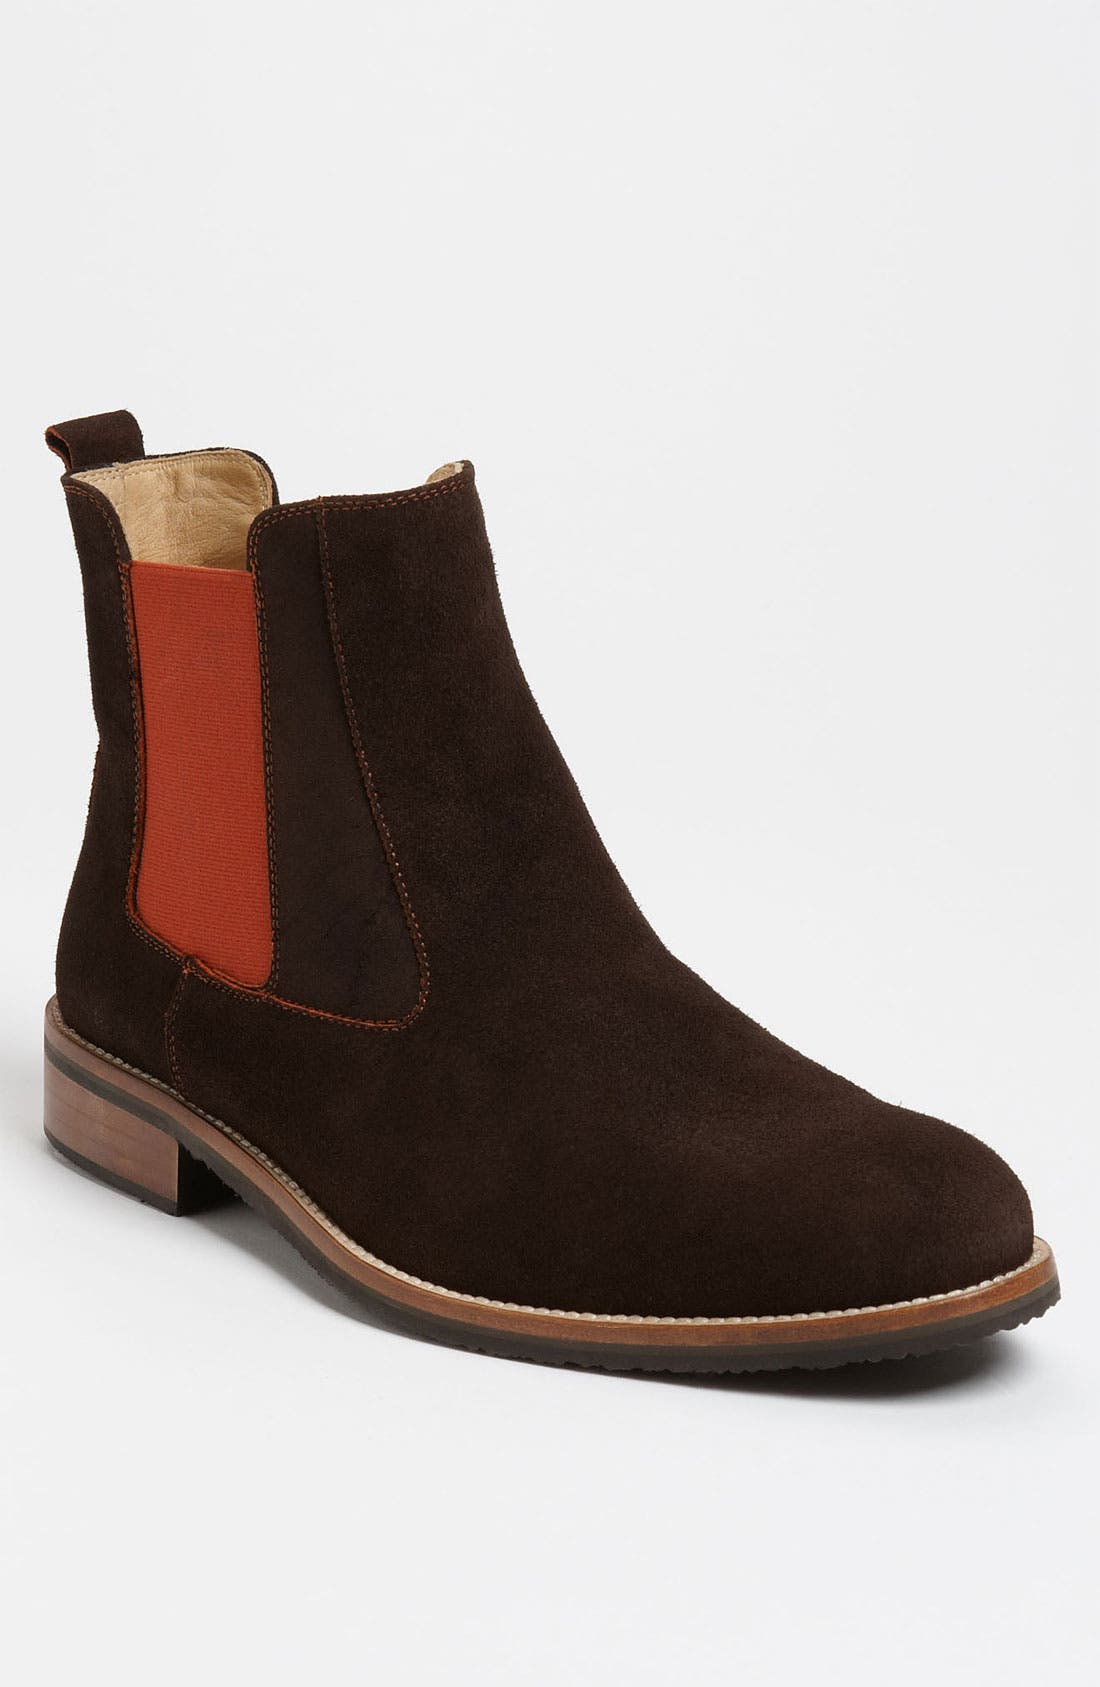 Alternate Image 1 Selected - Thomas Dean Suede Chelsea Boot